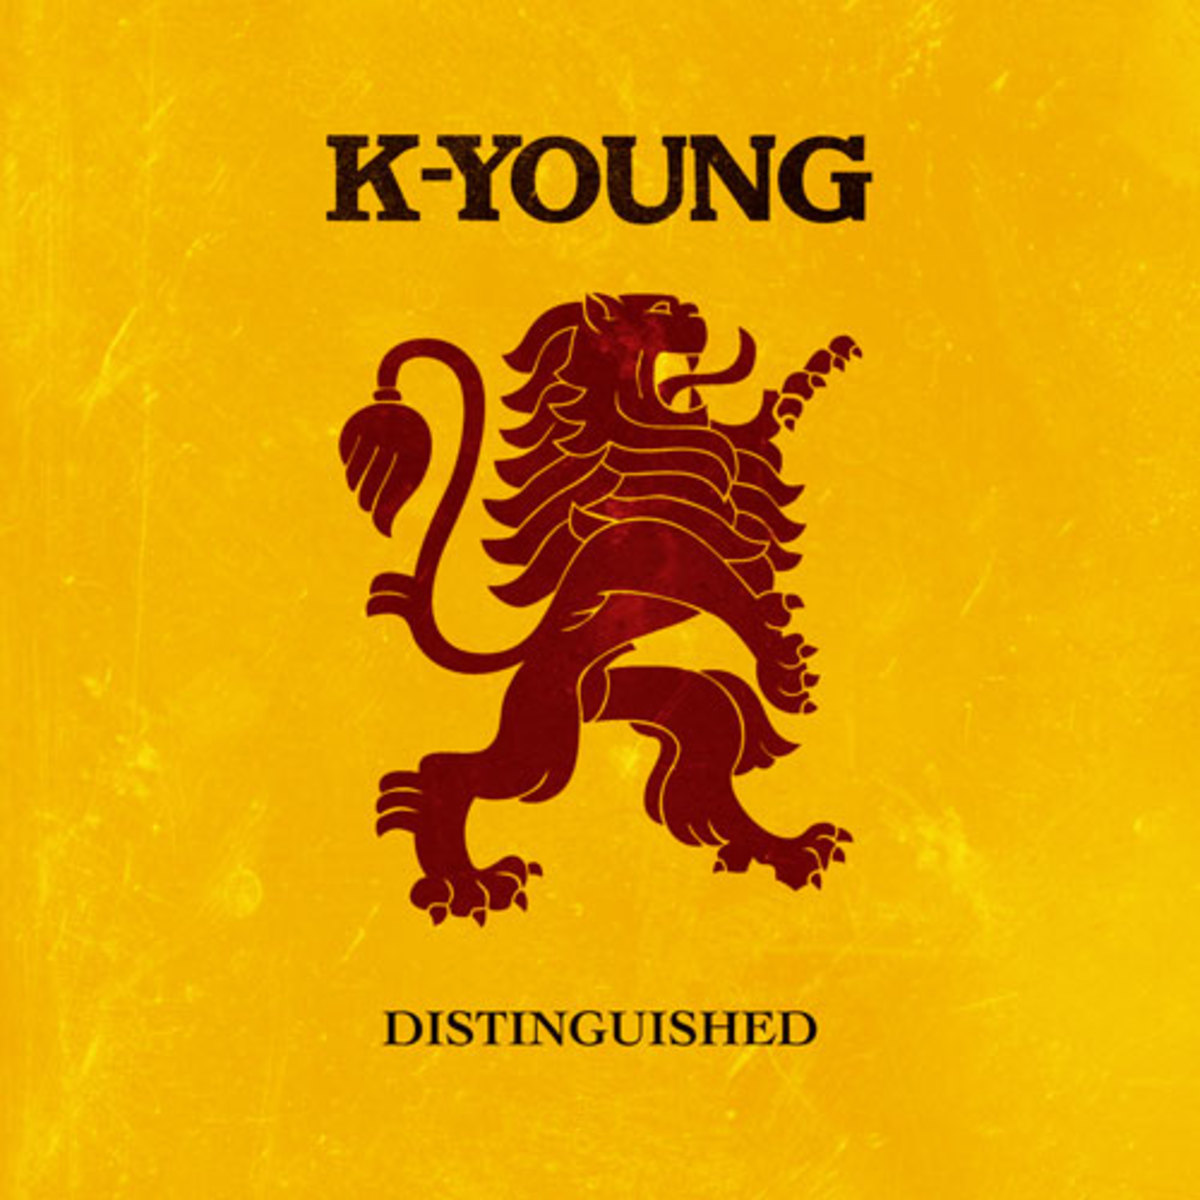 kyoung-distinguished.jpg